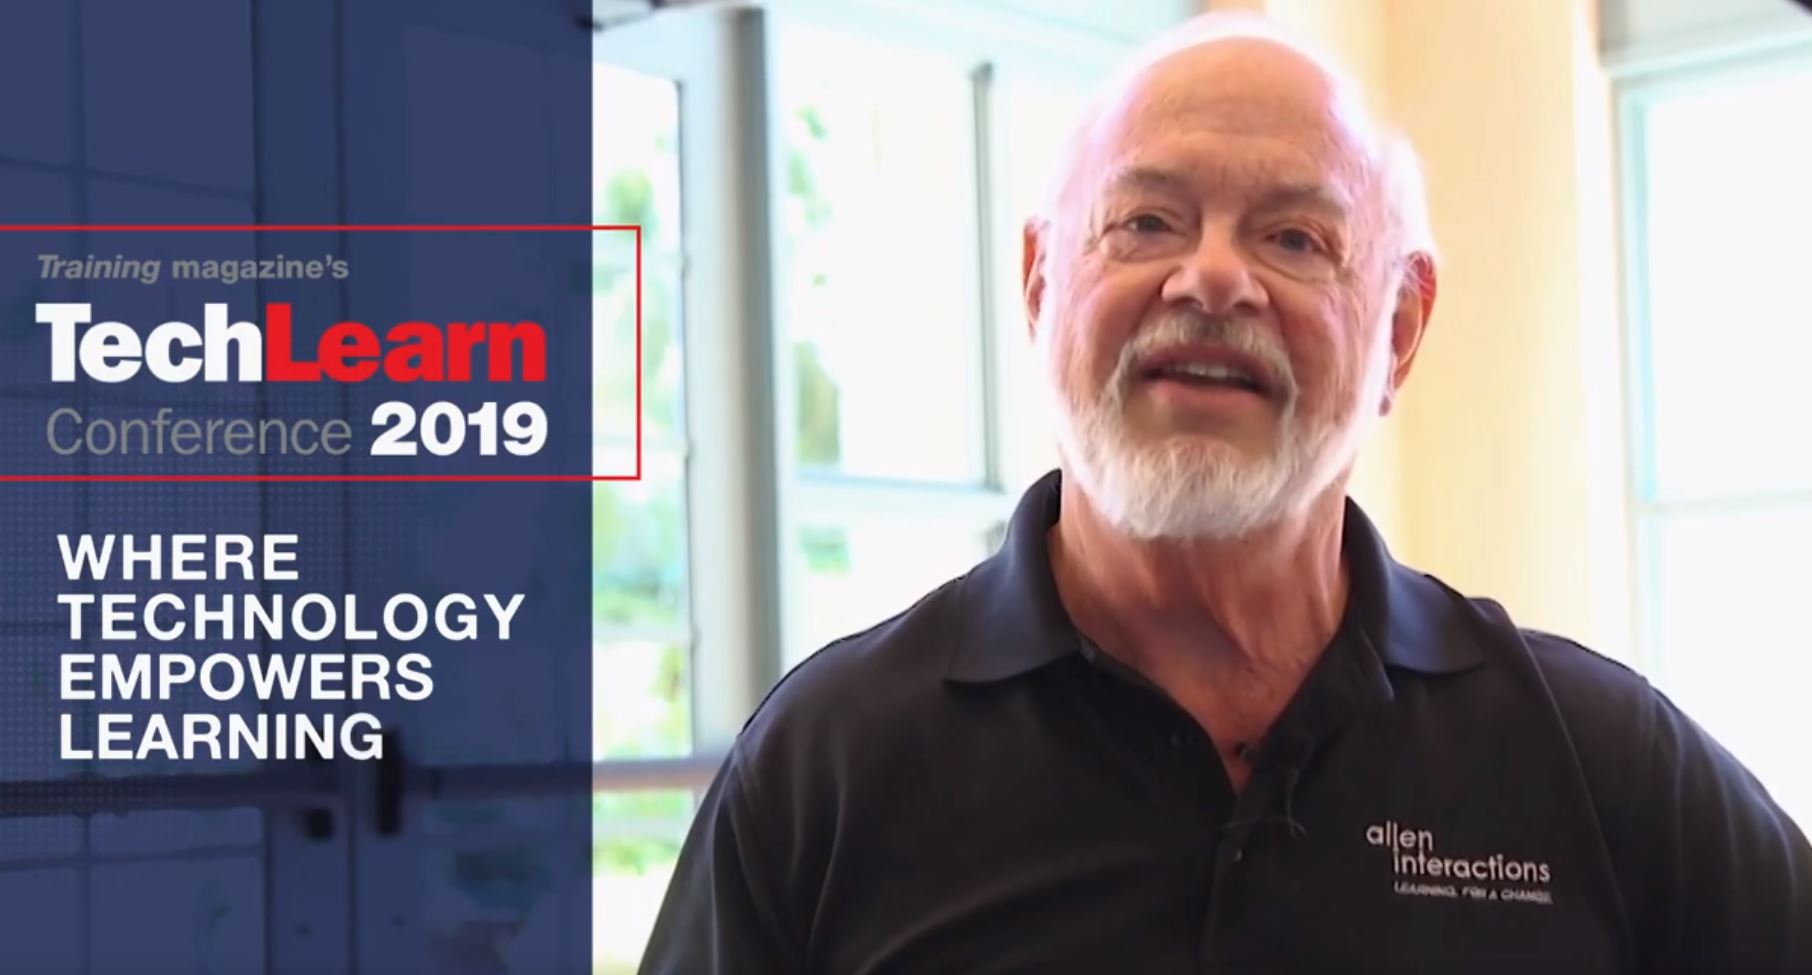 Join us for BIG IDEAS in the BIG EASY at TechLearn 2019!